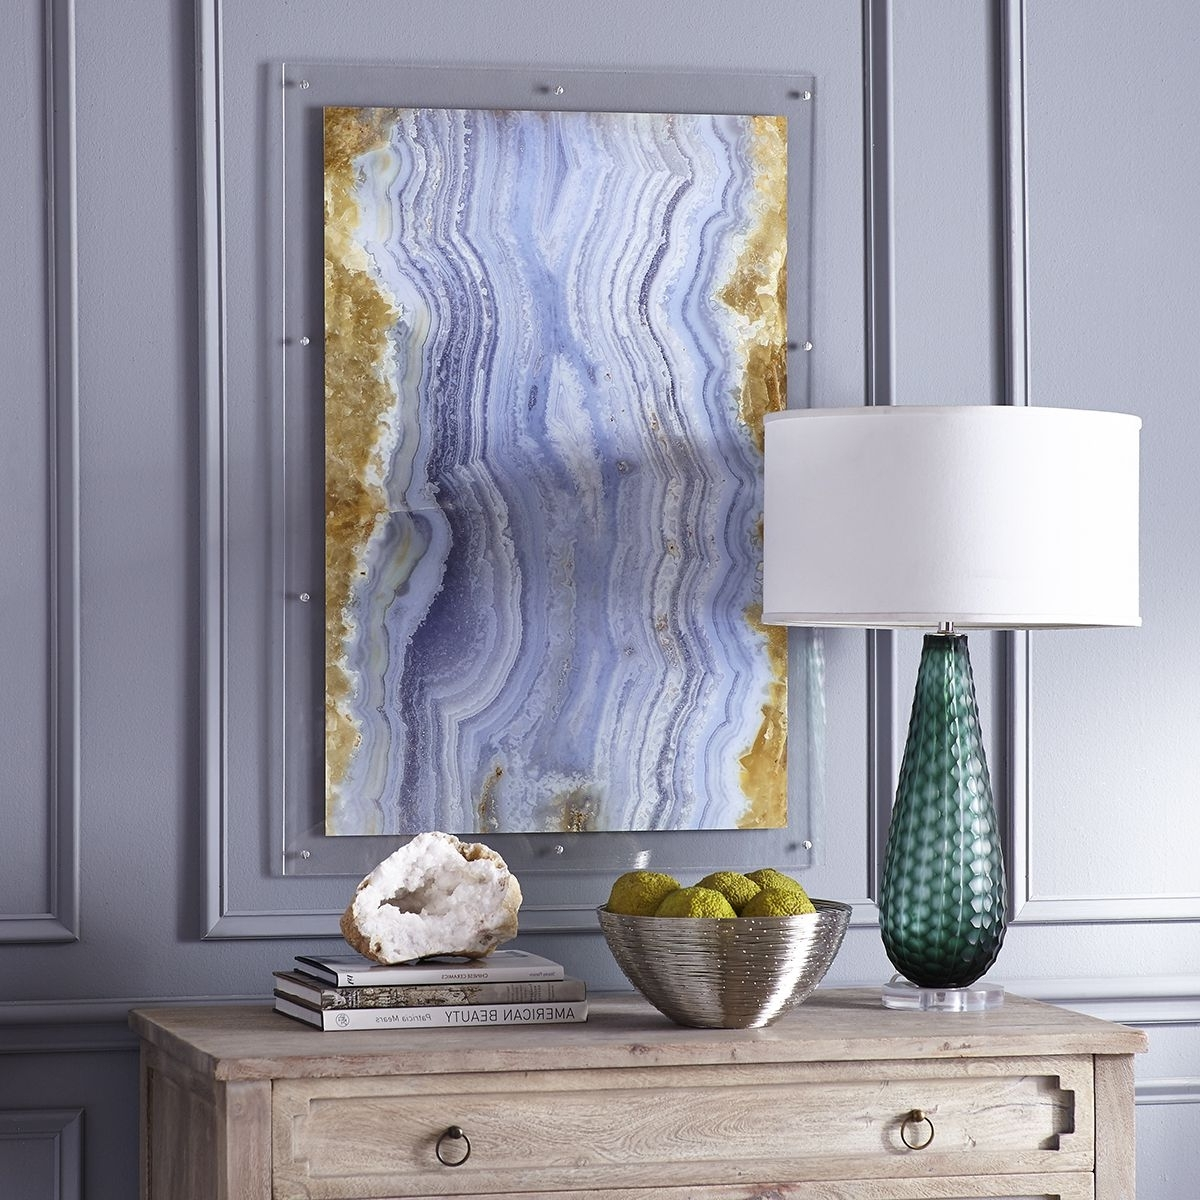 Agate, Walls And Acrylics Within Agate Wall Art (View 6 of 15)